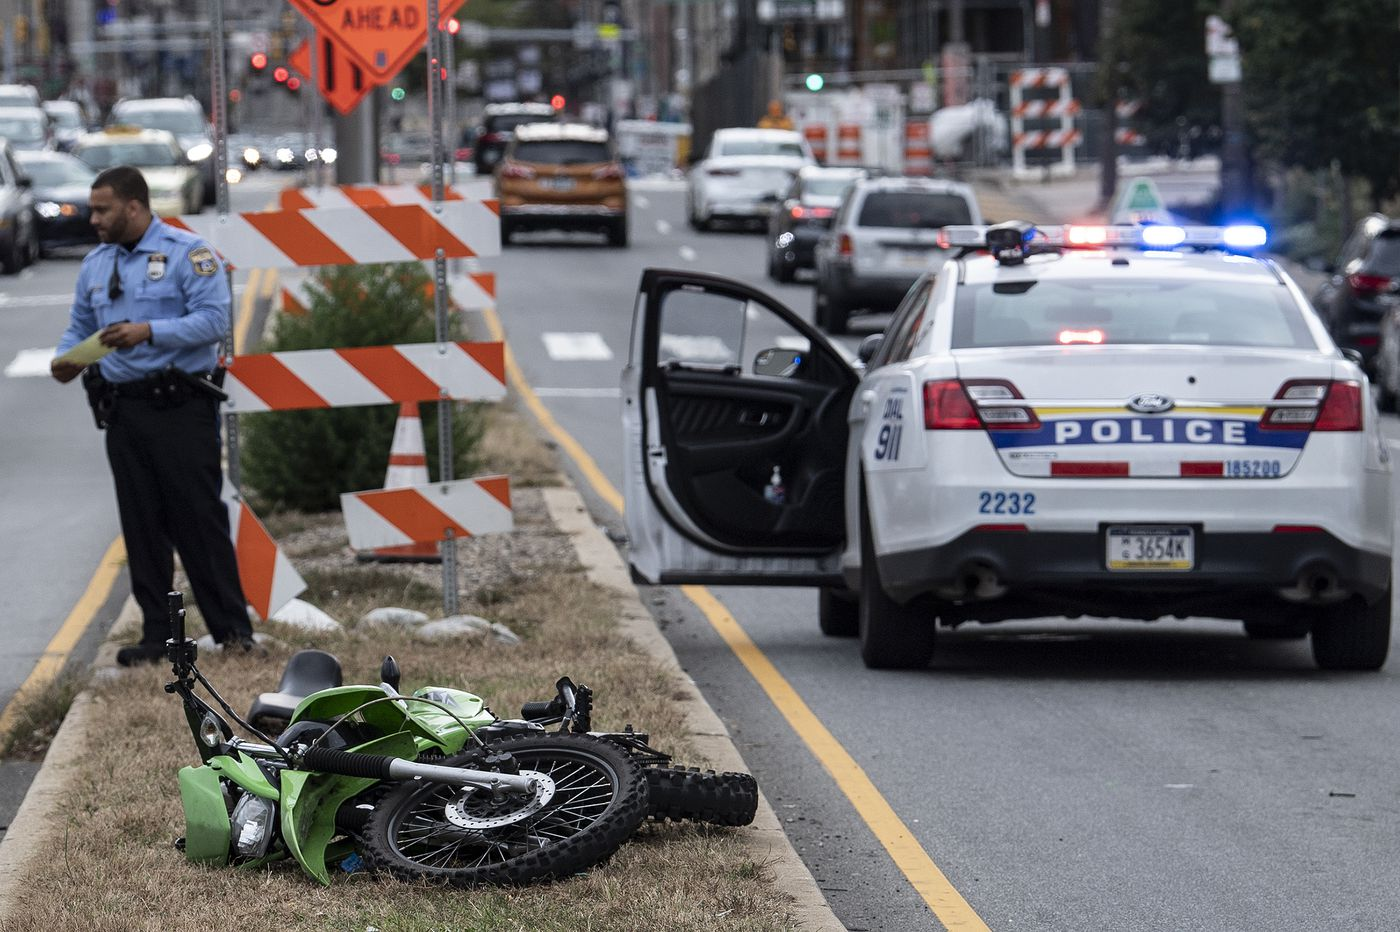 Police car struck by dirt bike, injuring officer